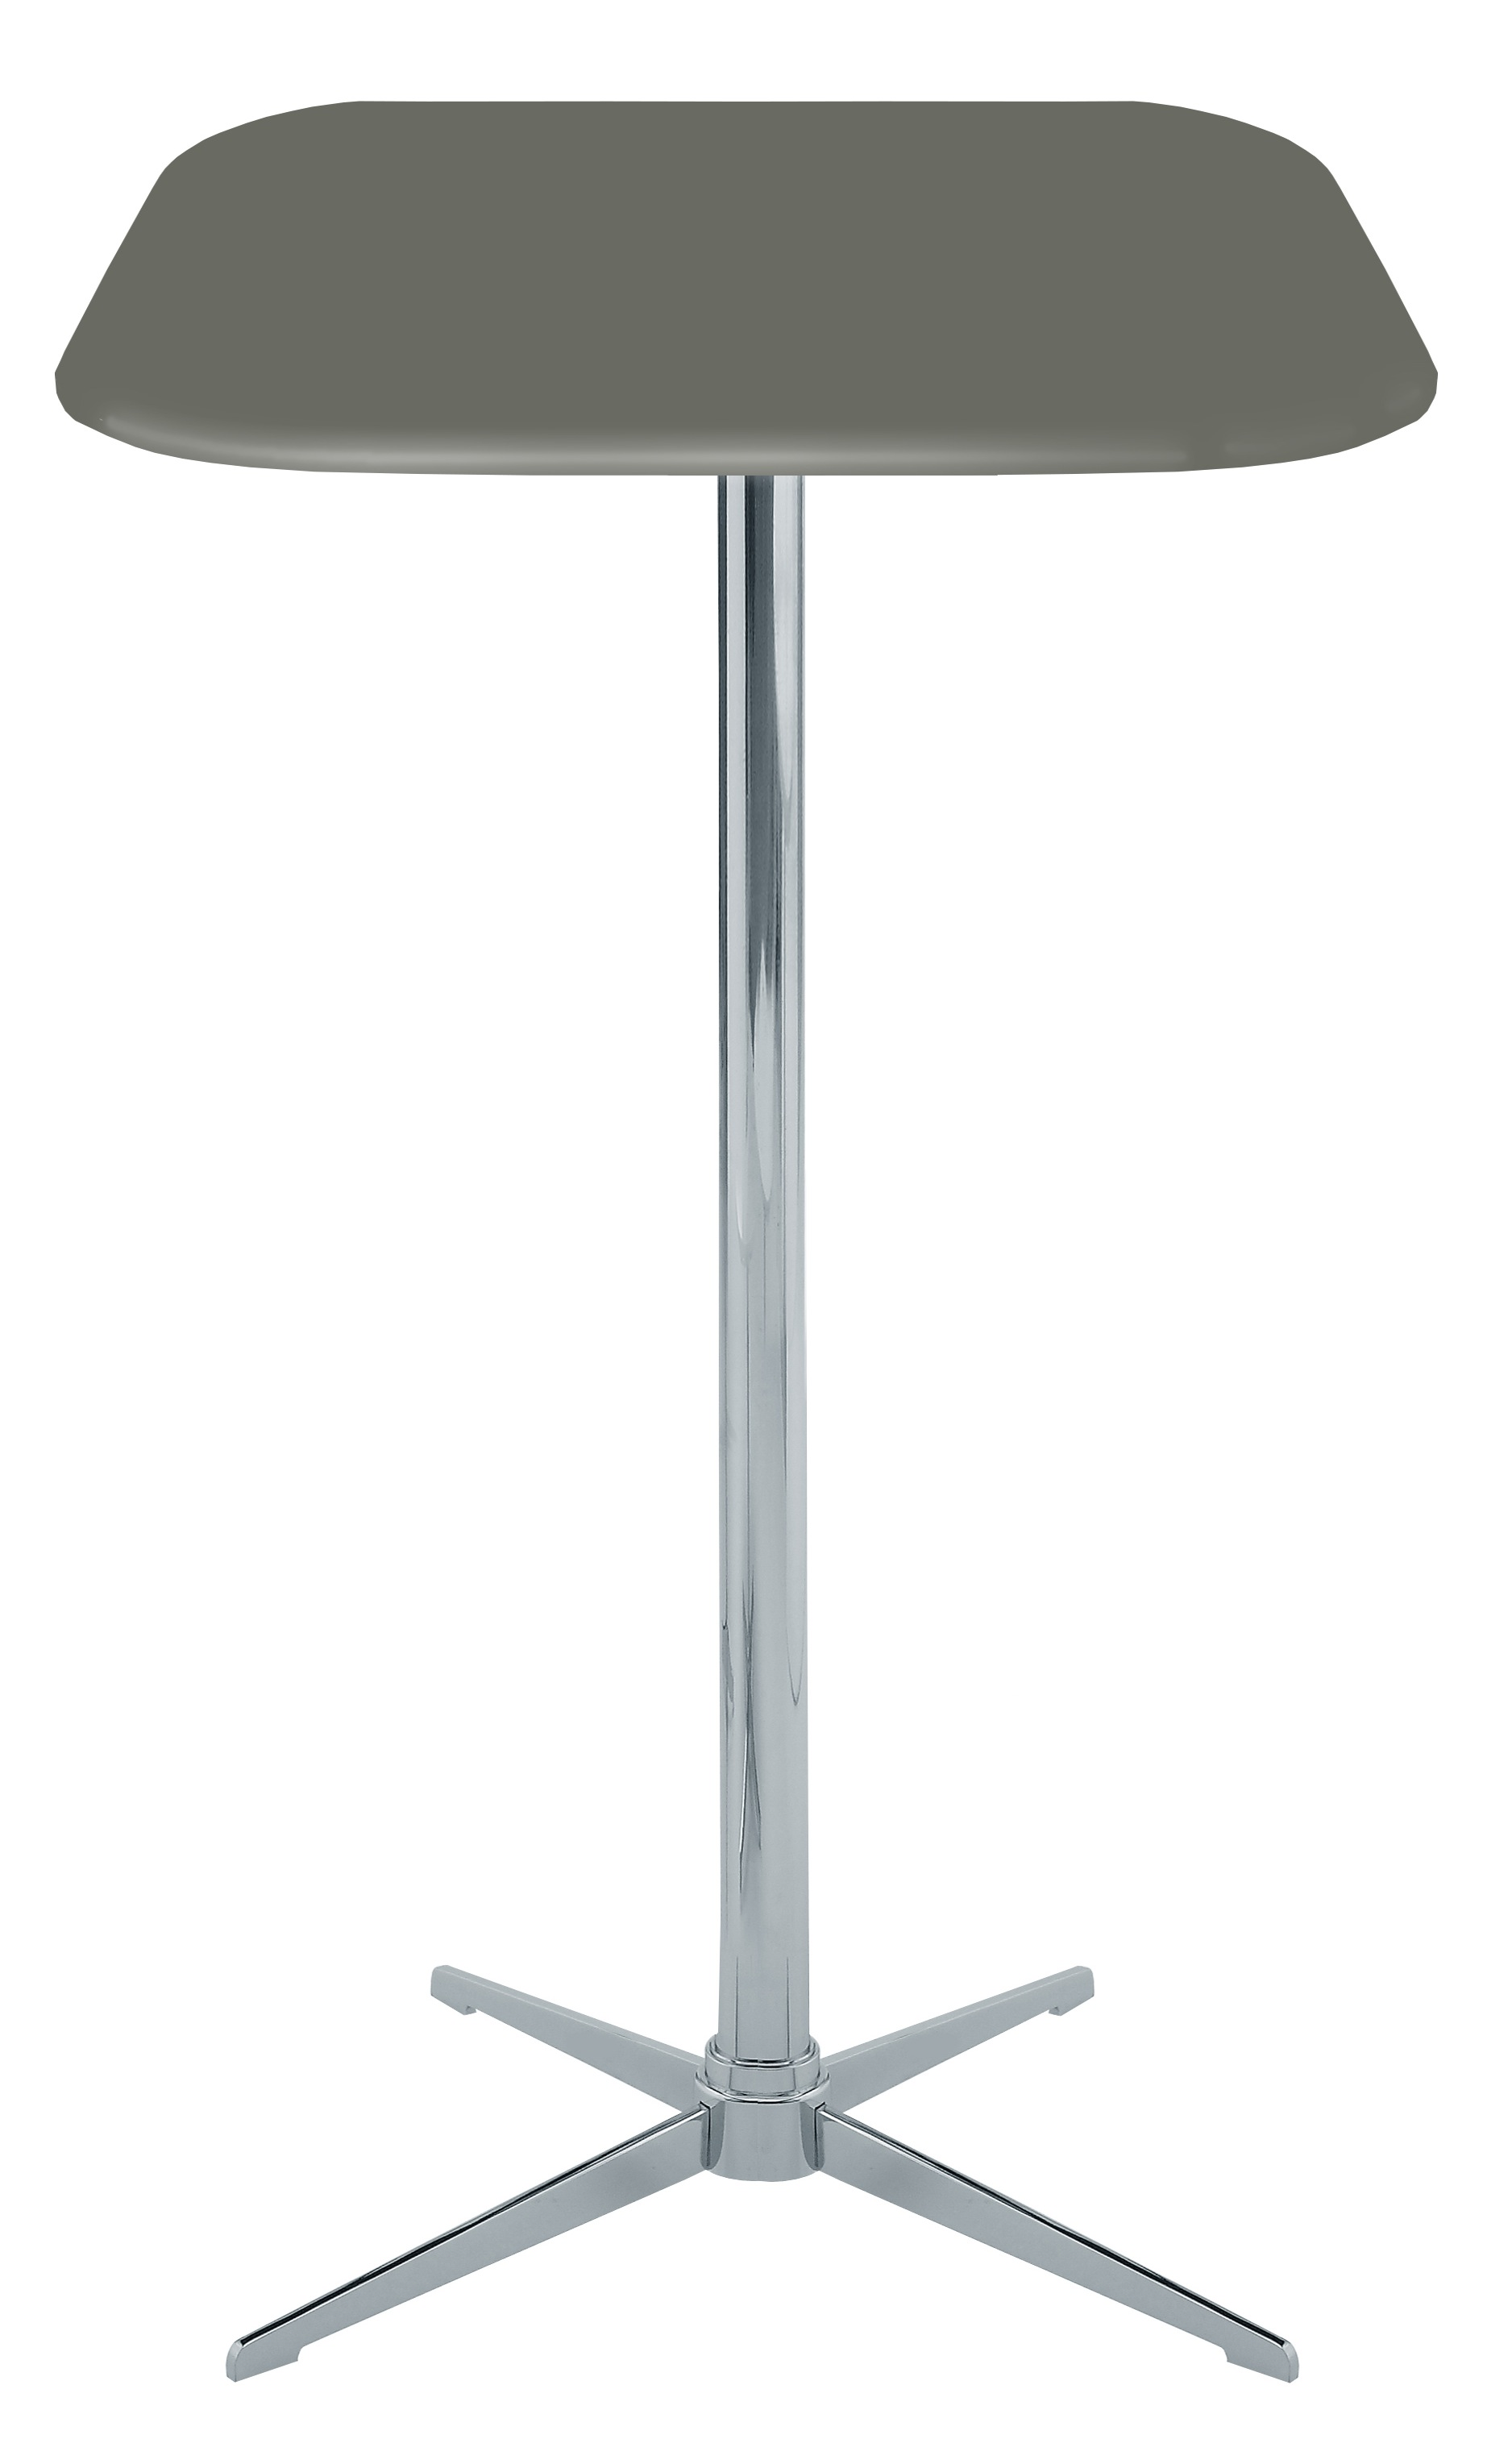 axeum-bar-table-gray.jpg